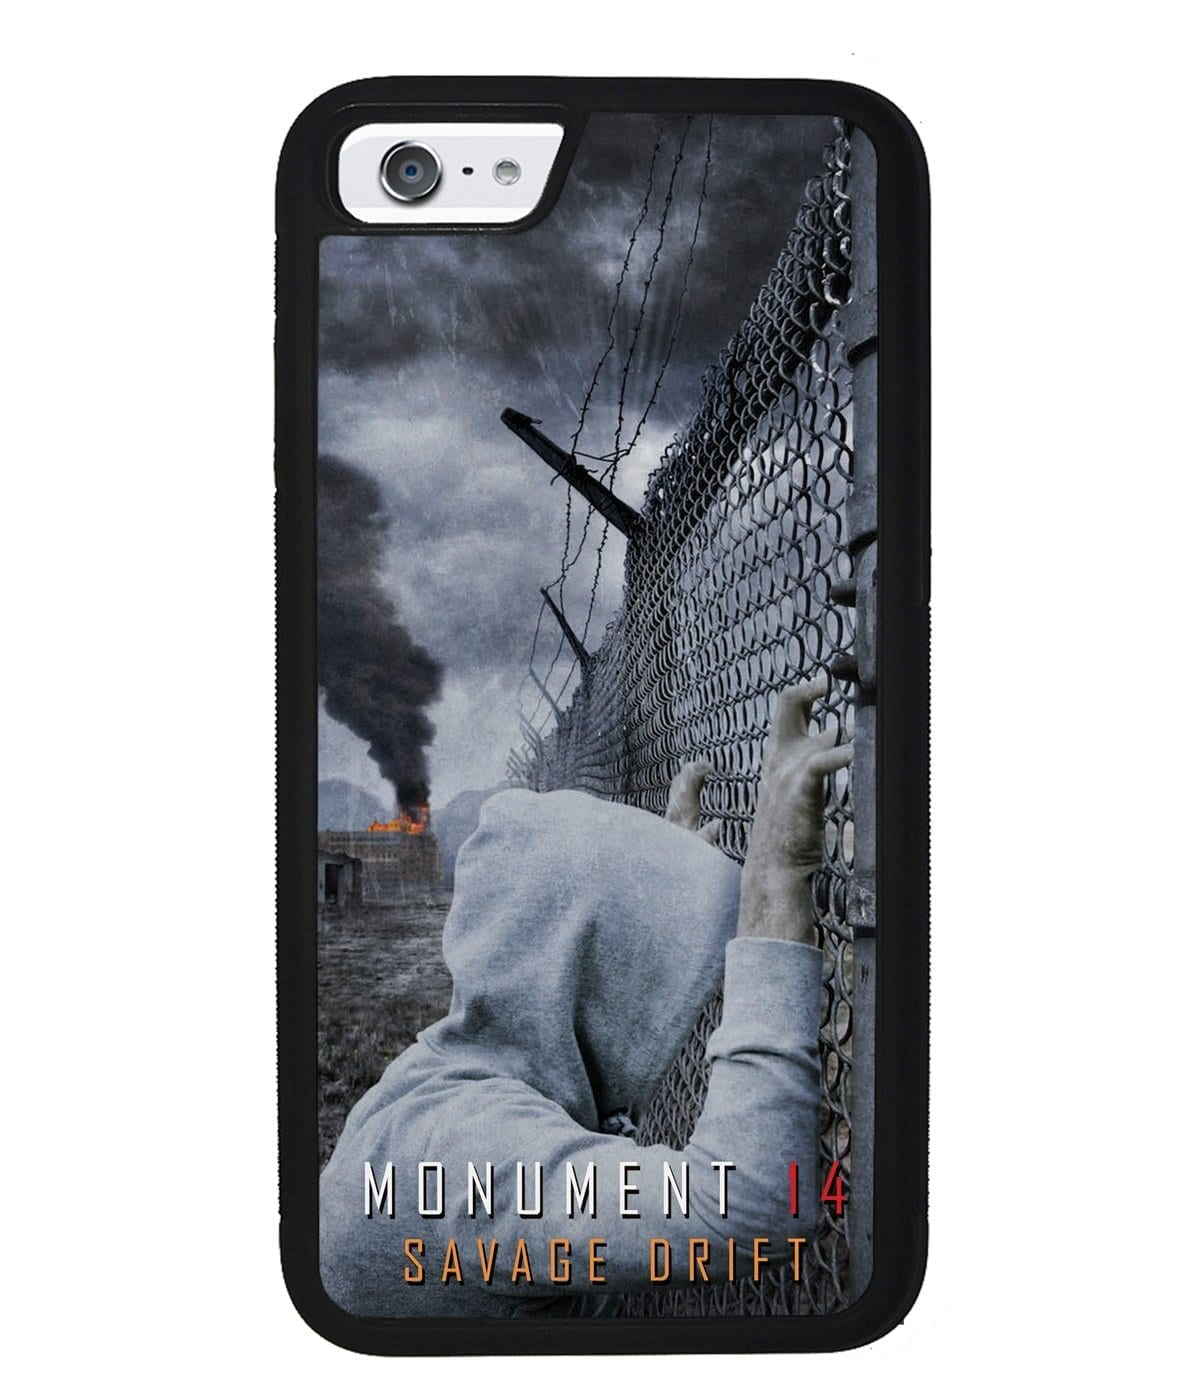 Monument 14: Savage Drift Phone Case (iPhone)